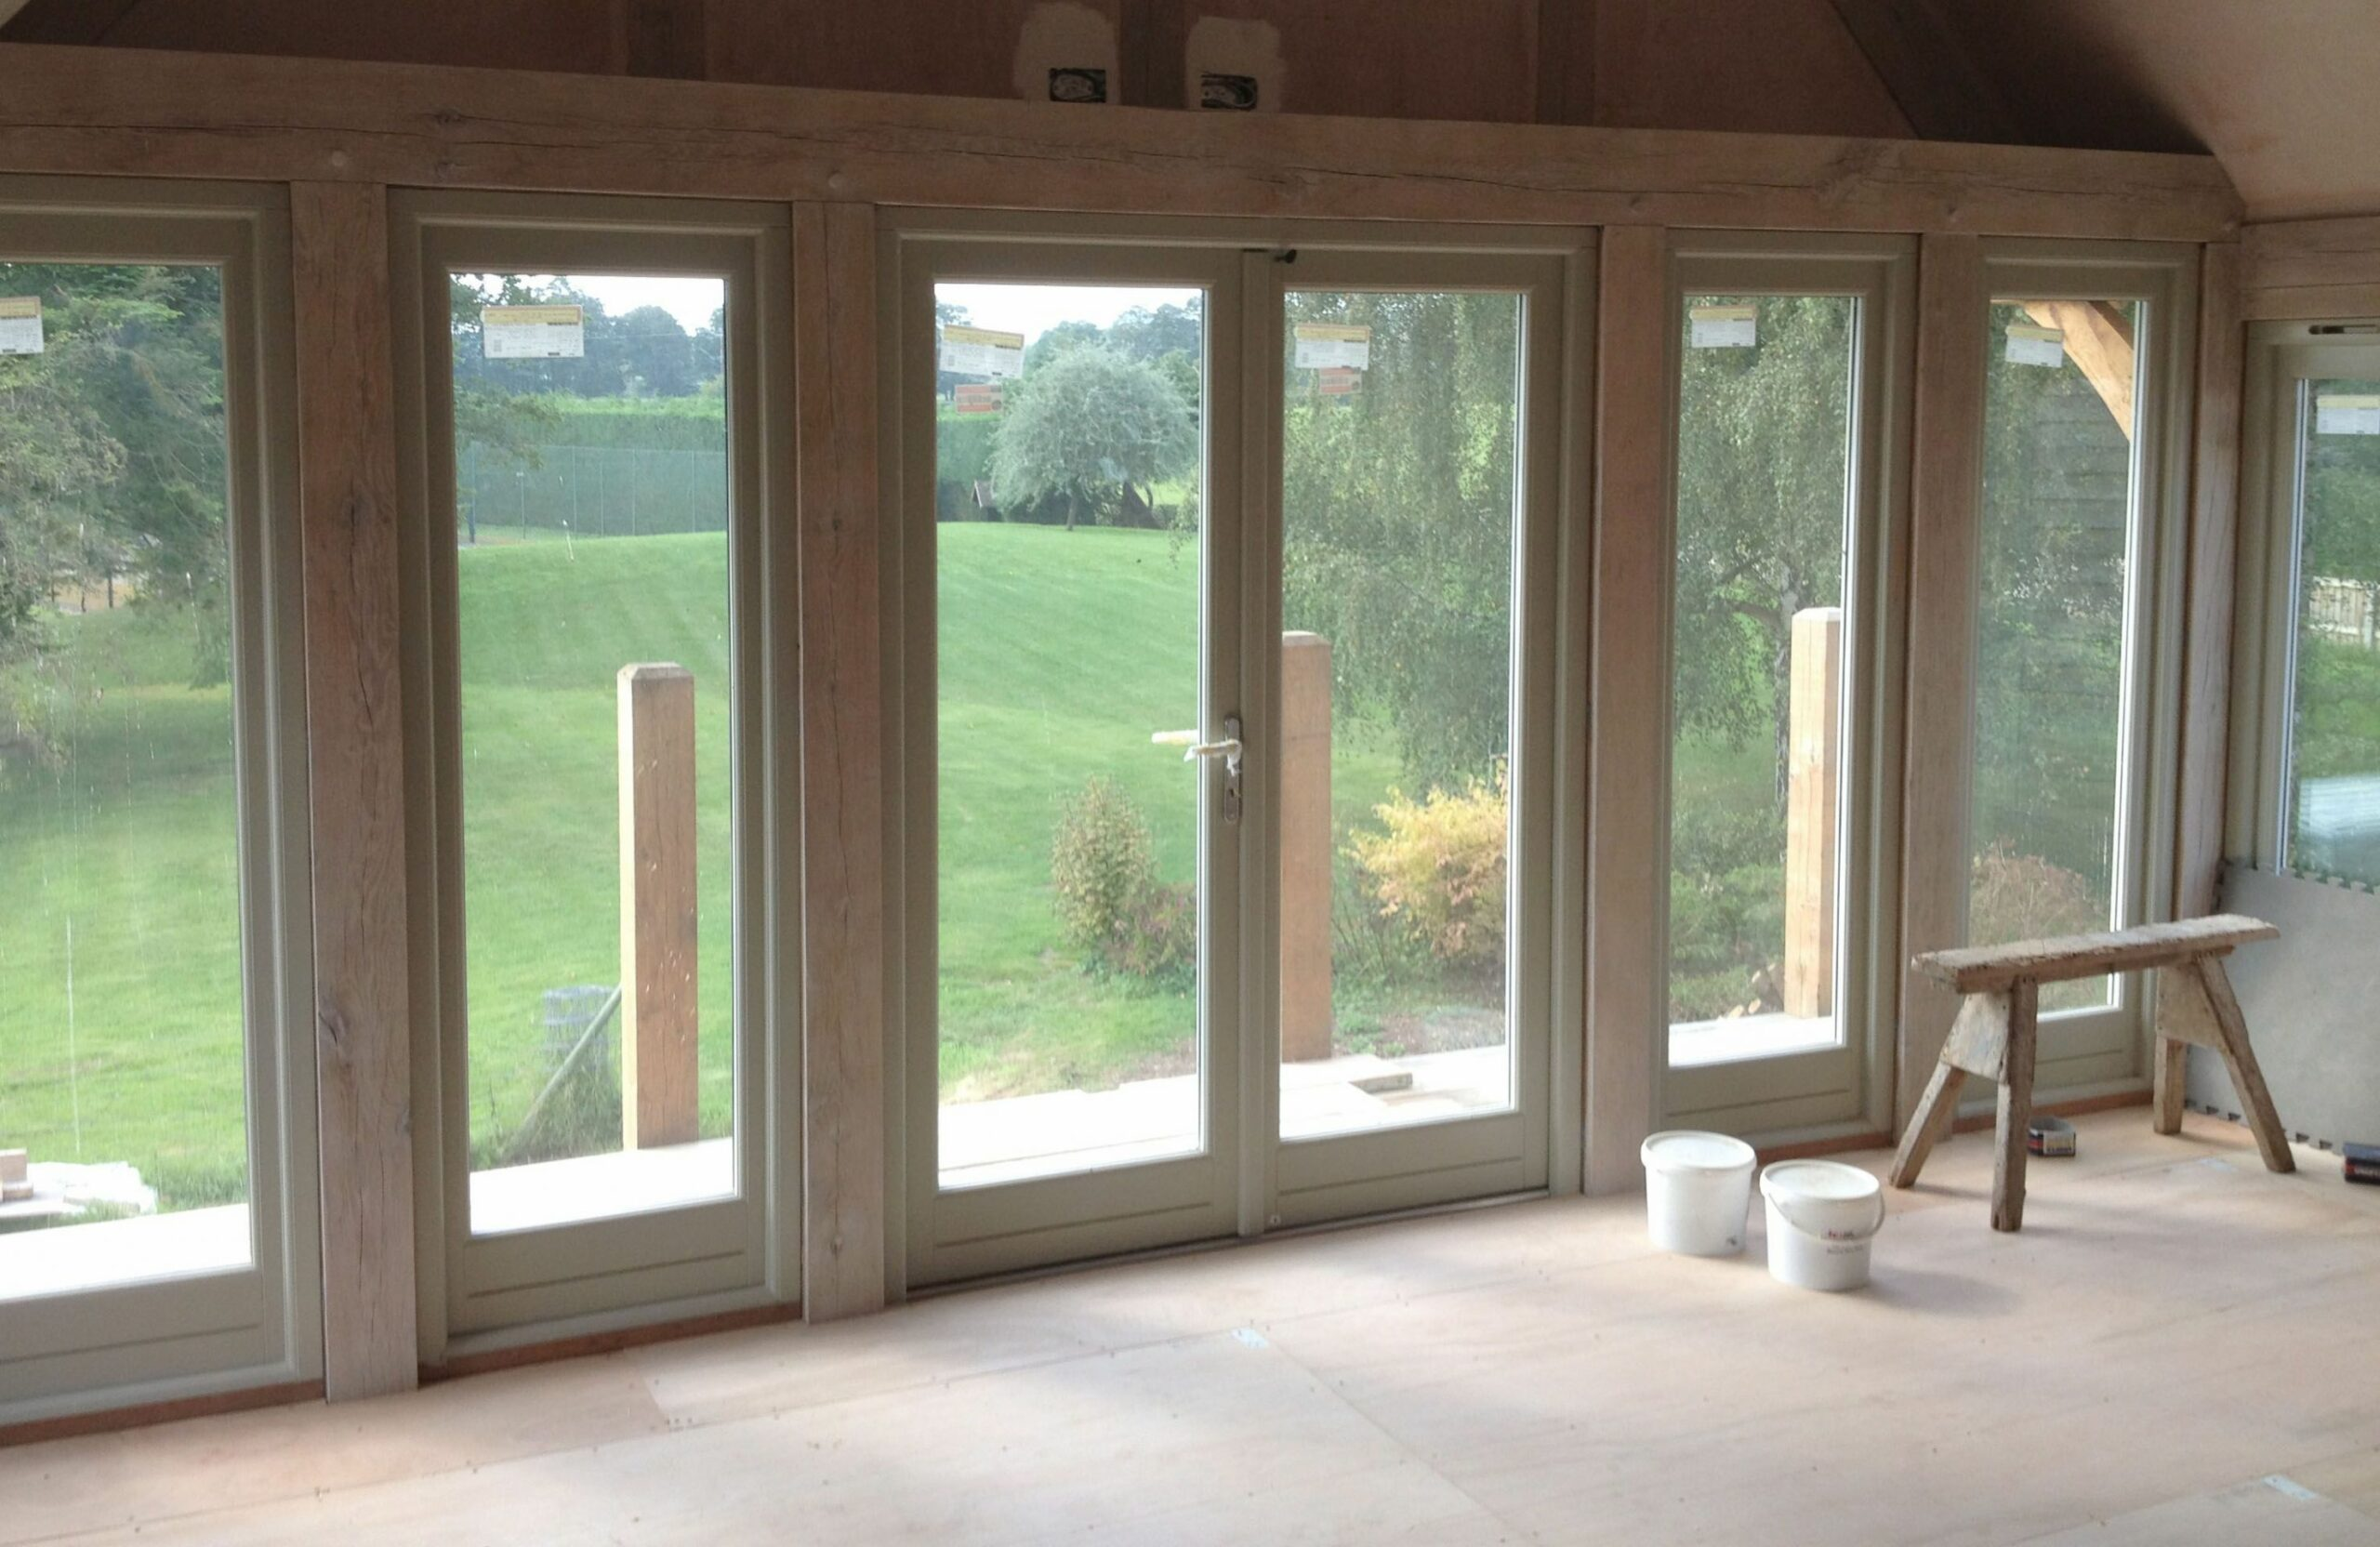 continuous windows in oak frame | Beautiful houses interior, Self ..